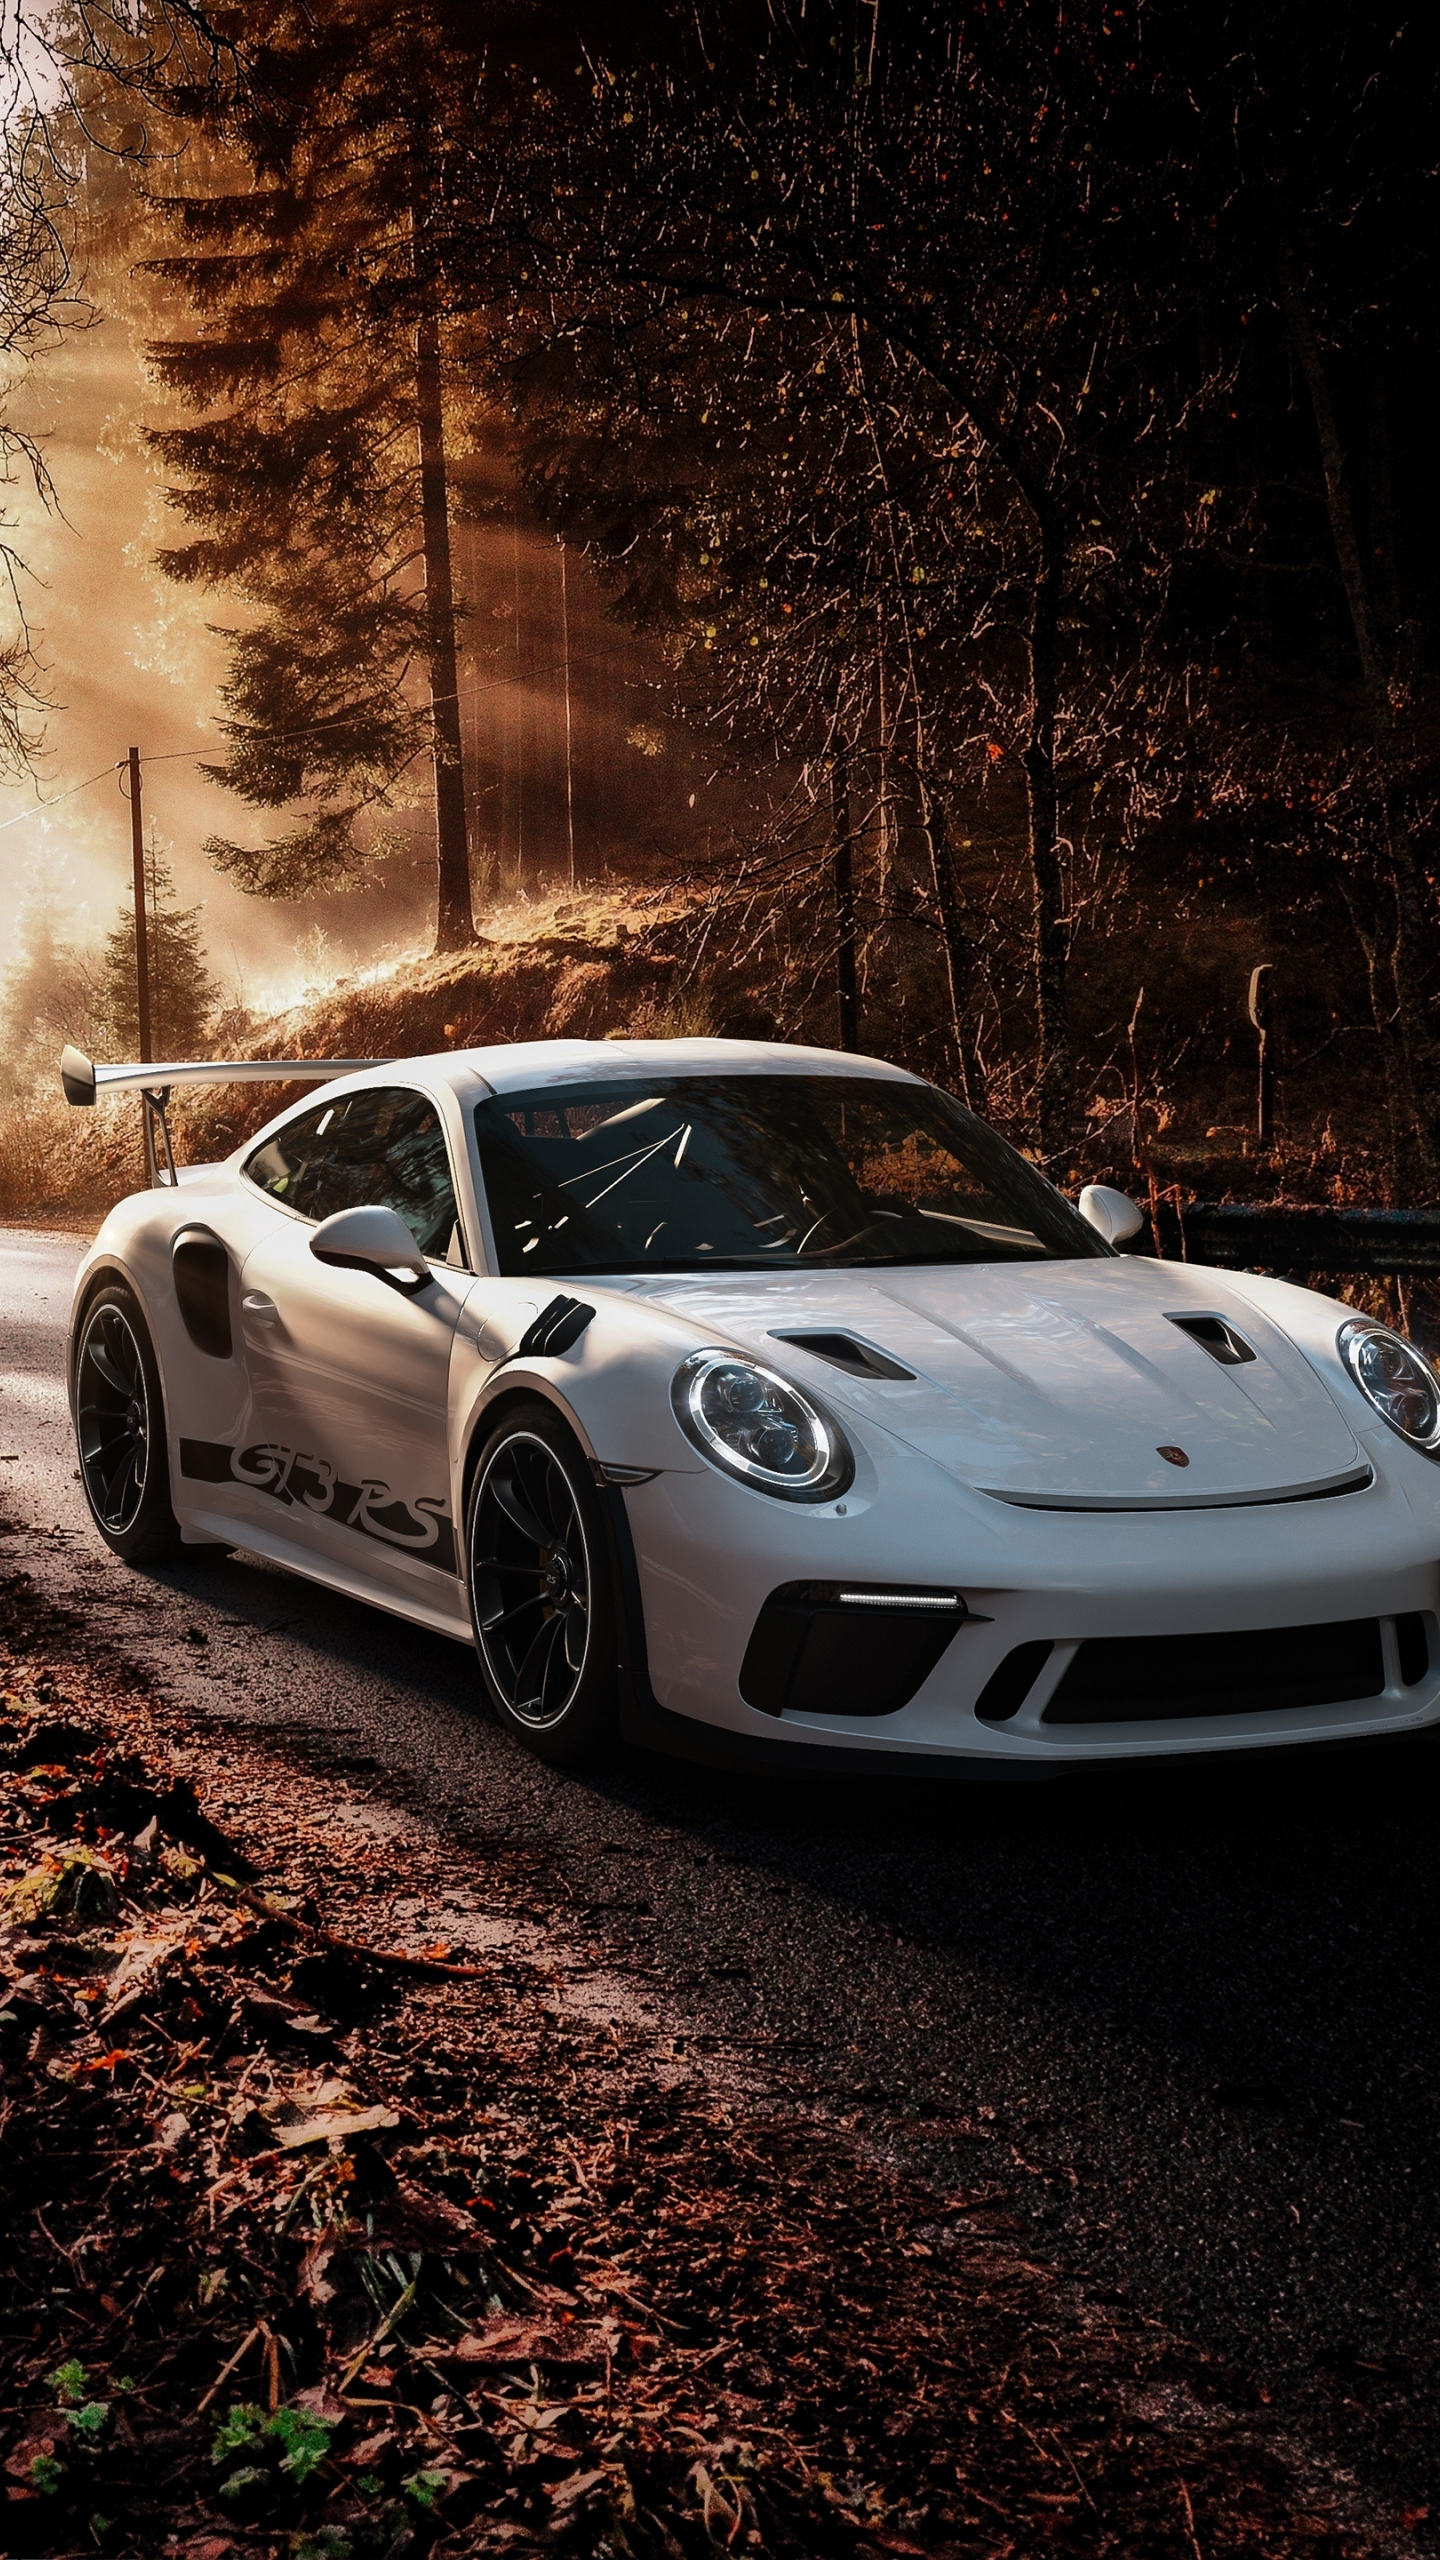 Download 1440x2560 Wallpaper Porsche 911 Gt3 Rs 2019 Qhd Samsung Galaxy S6 S7 Edge Note Lg G4 1440x2560 Hd Image Background 17192